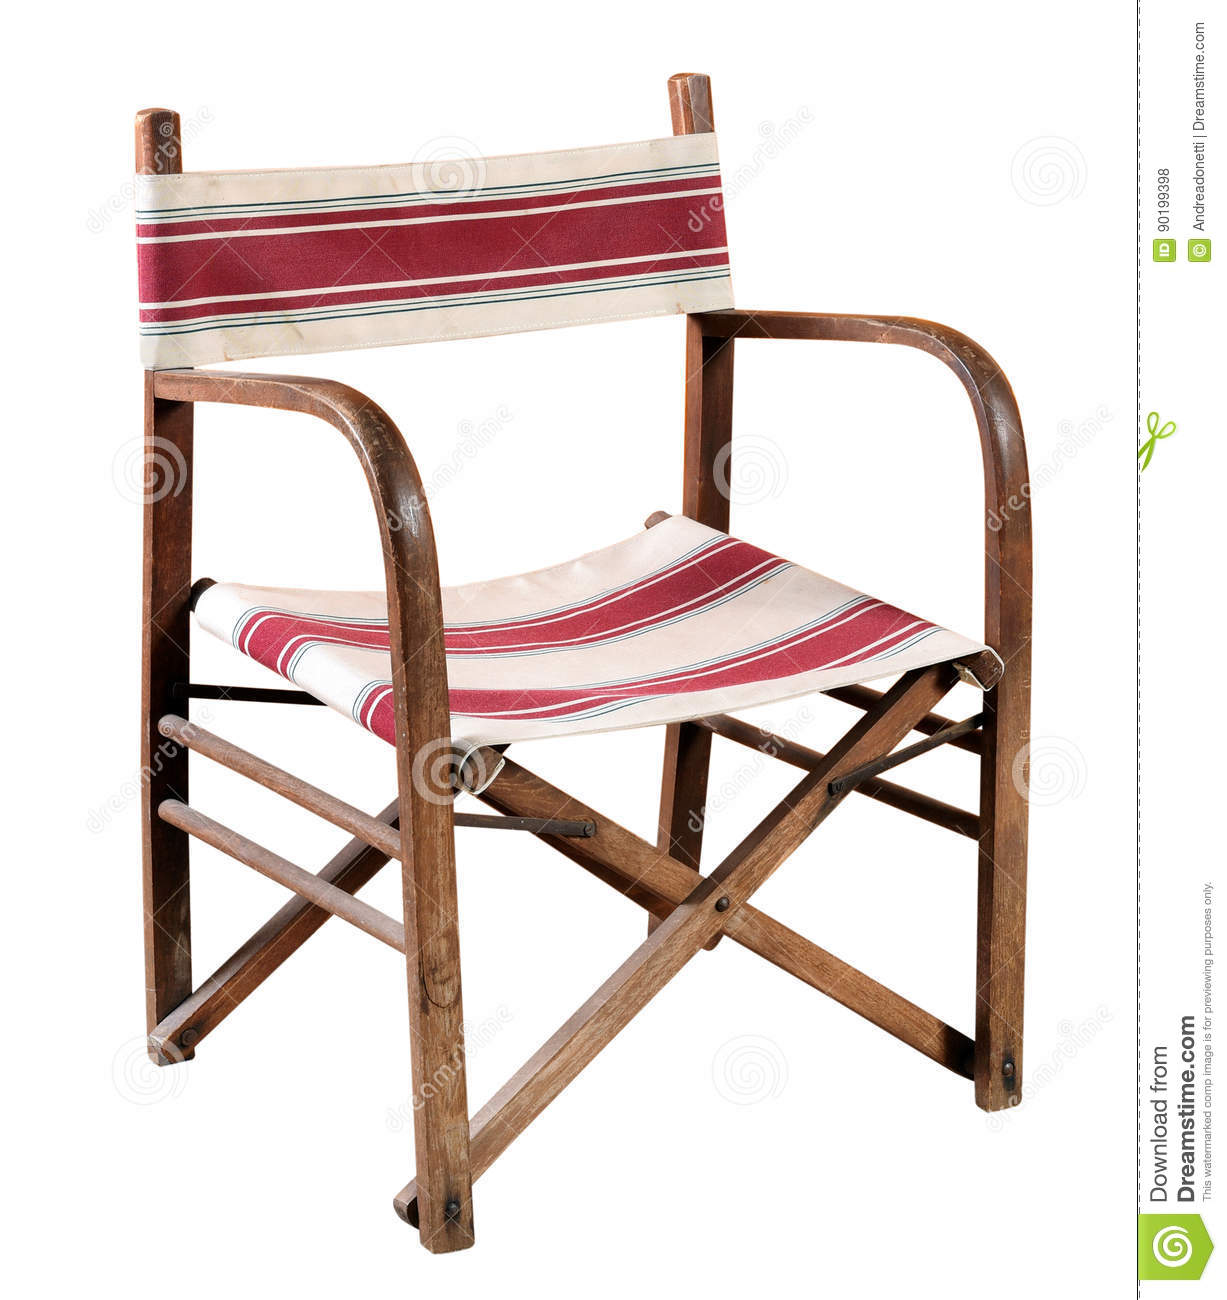 Folding wooden armchair stock photo. Image of chair ...